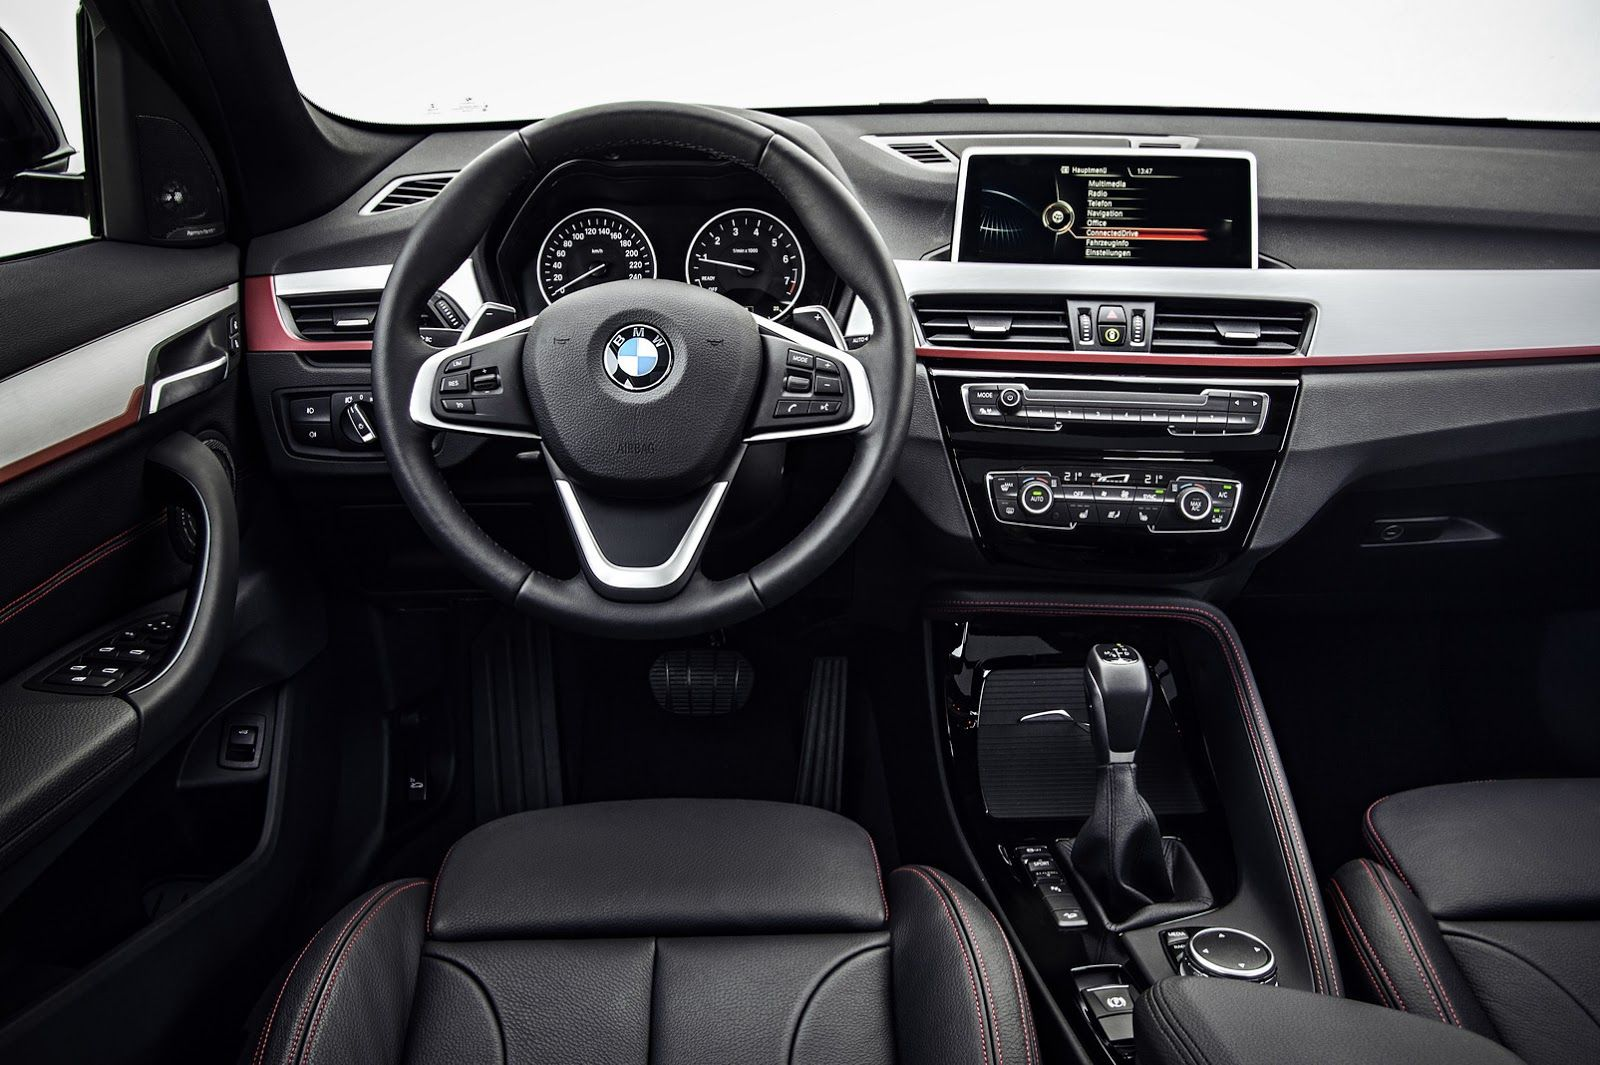 2016 Bmw X1 Moves Into Its Second Generation 76 Photos Video